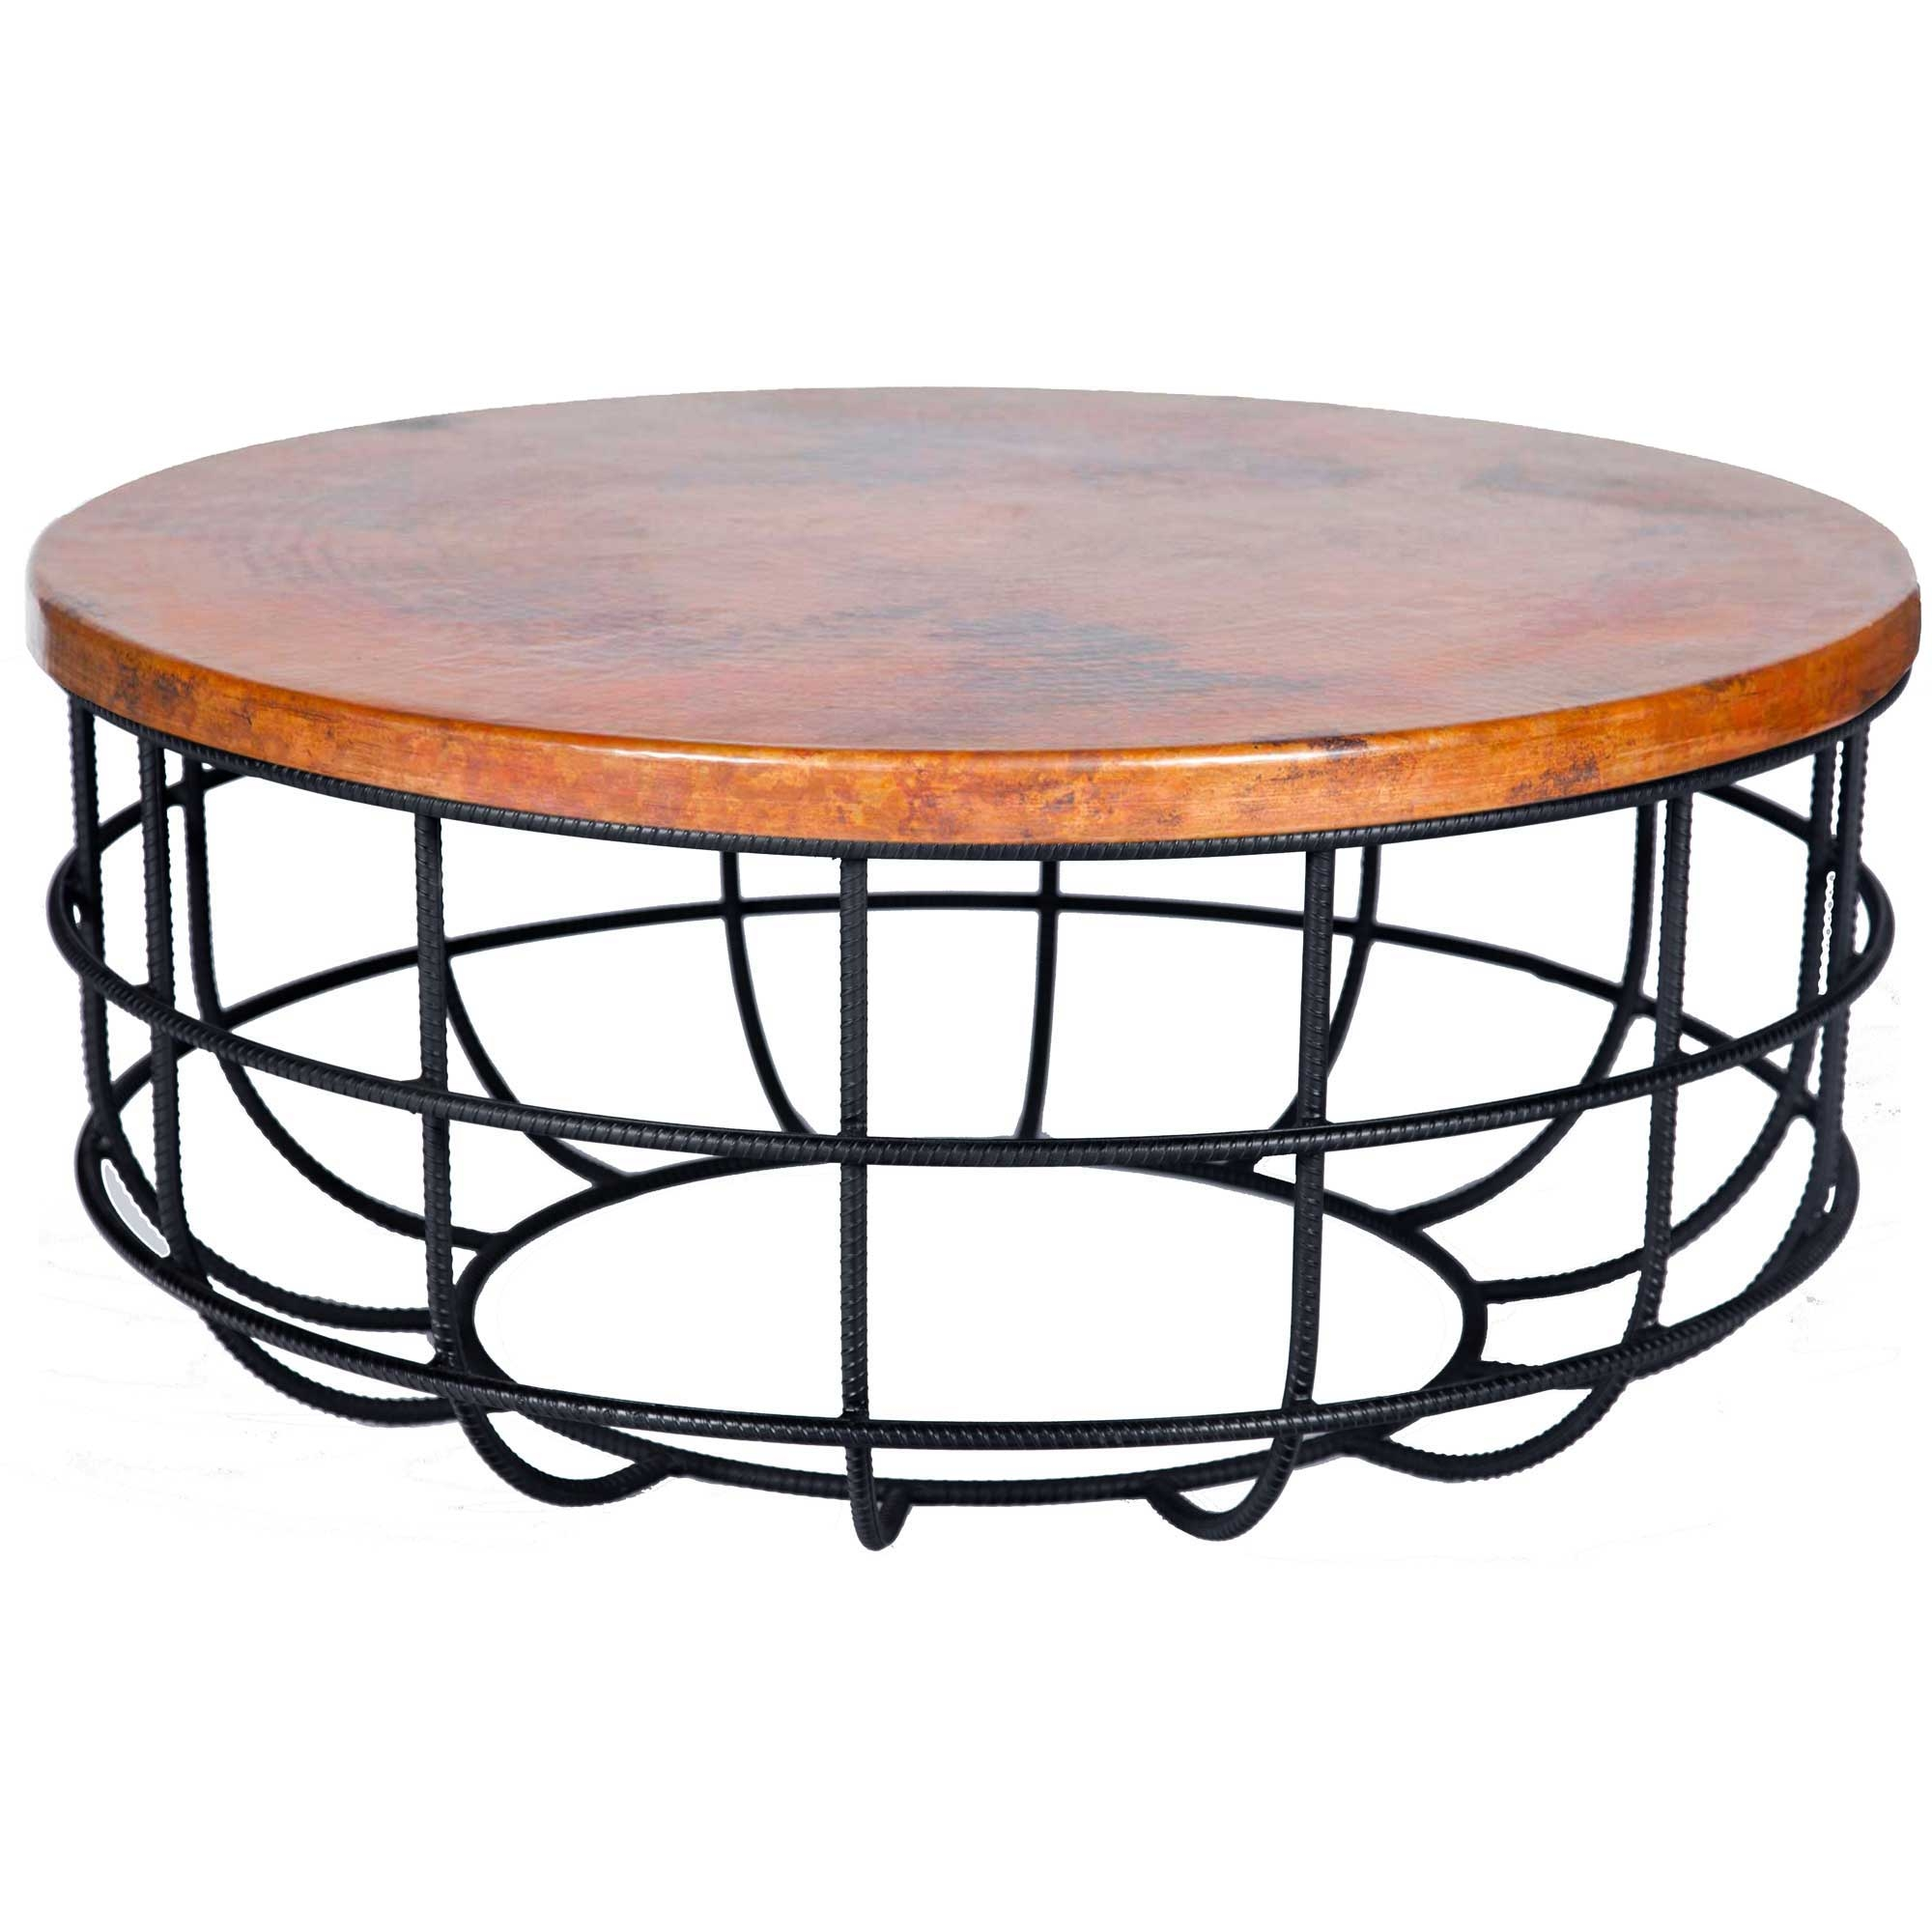 Axel iron coffee table with round hammered copper top pictured here is the axel coffee table with wrought iron base and round hammered copper table geotapseo Images